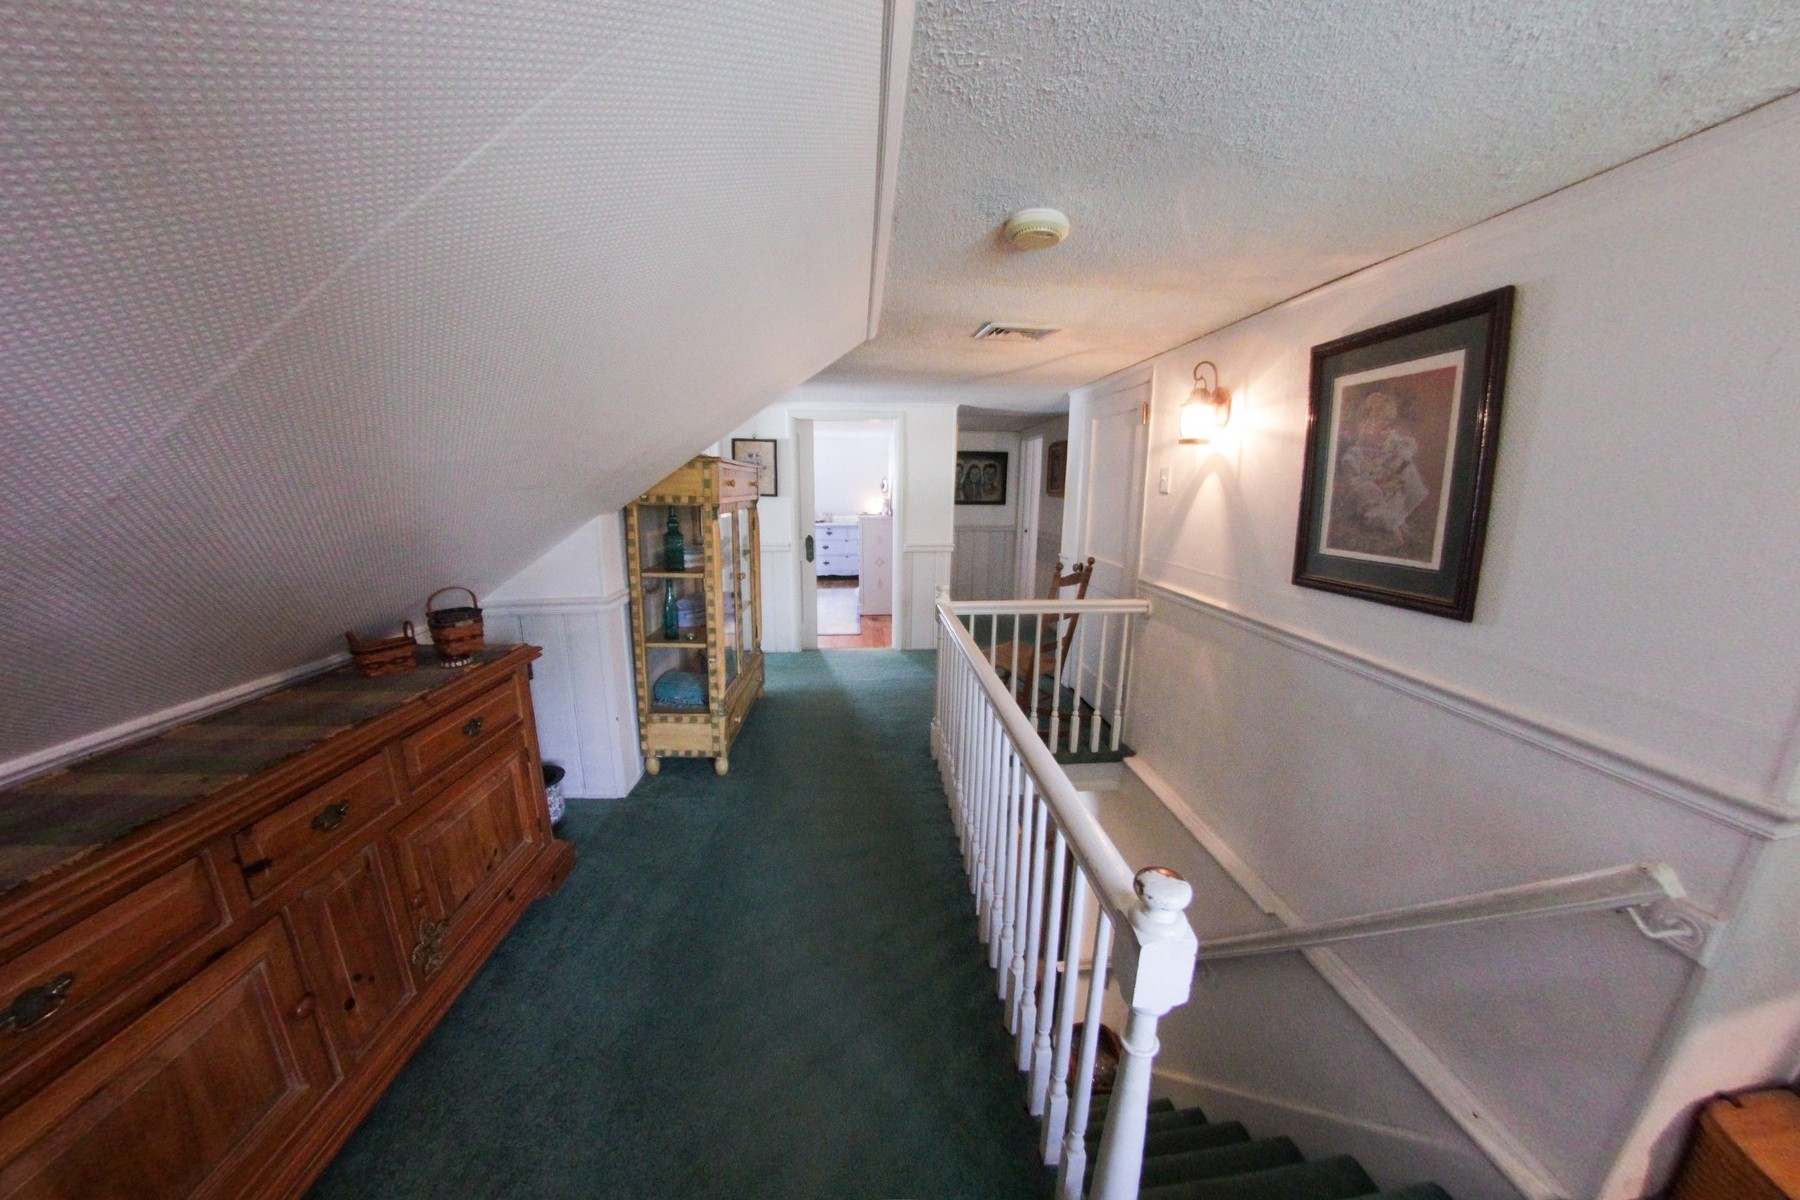 Additional photo for property listing at Unique New England Style Cape Cod Home 15 Haines Avenue Linwood, New Jersey 08221 United States